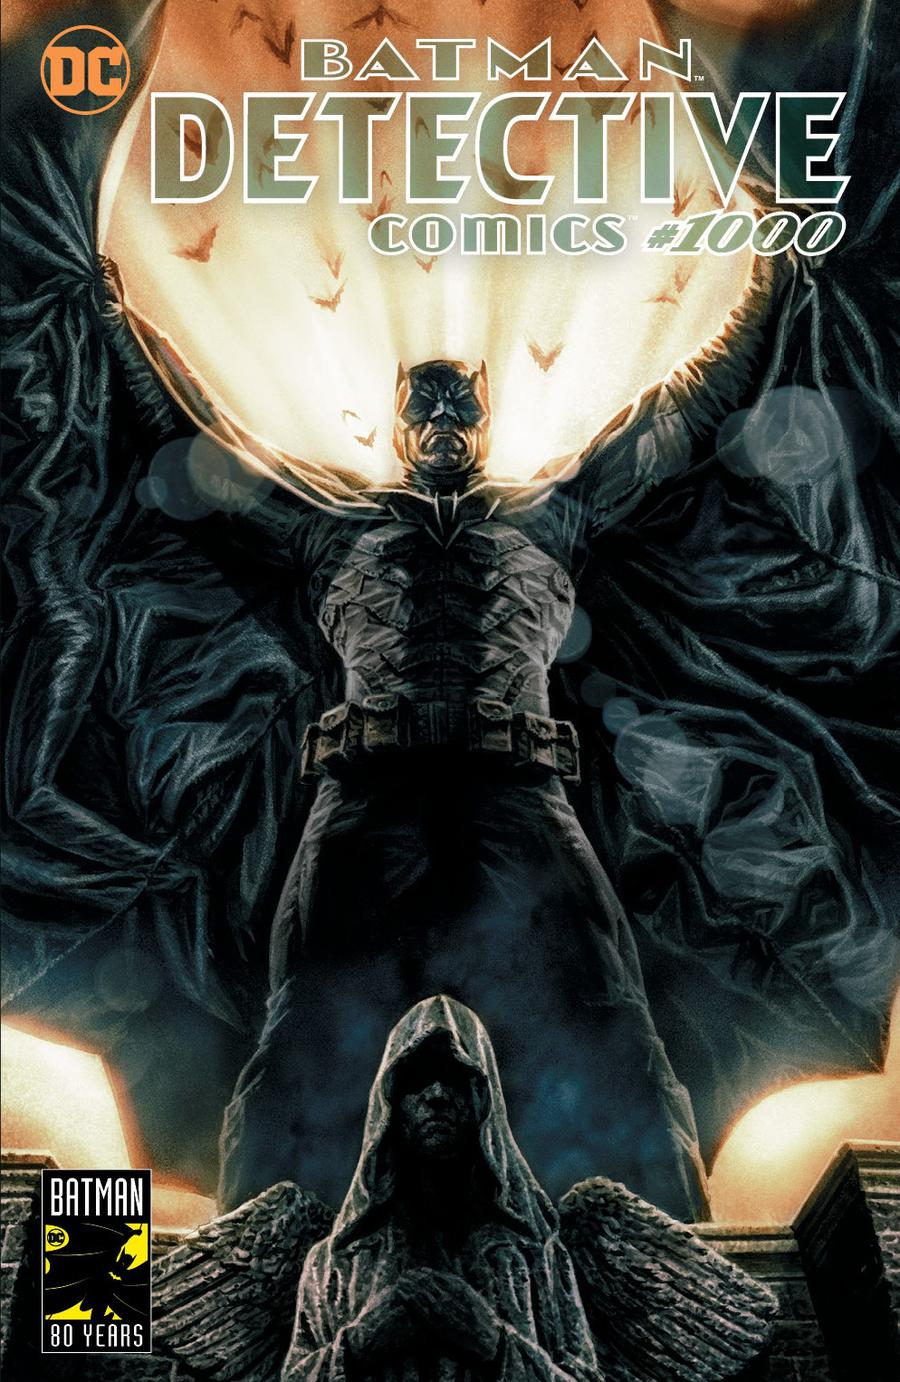 Detective Comics Vol 2 #1000  Midtown Exclusive Cover A Lee Bermejo Variant Cover